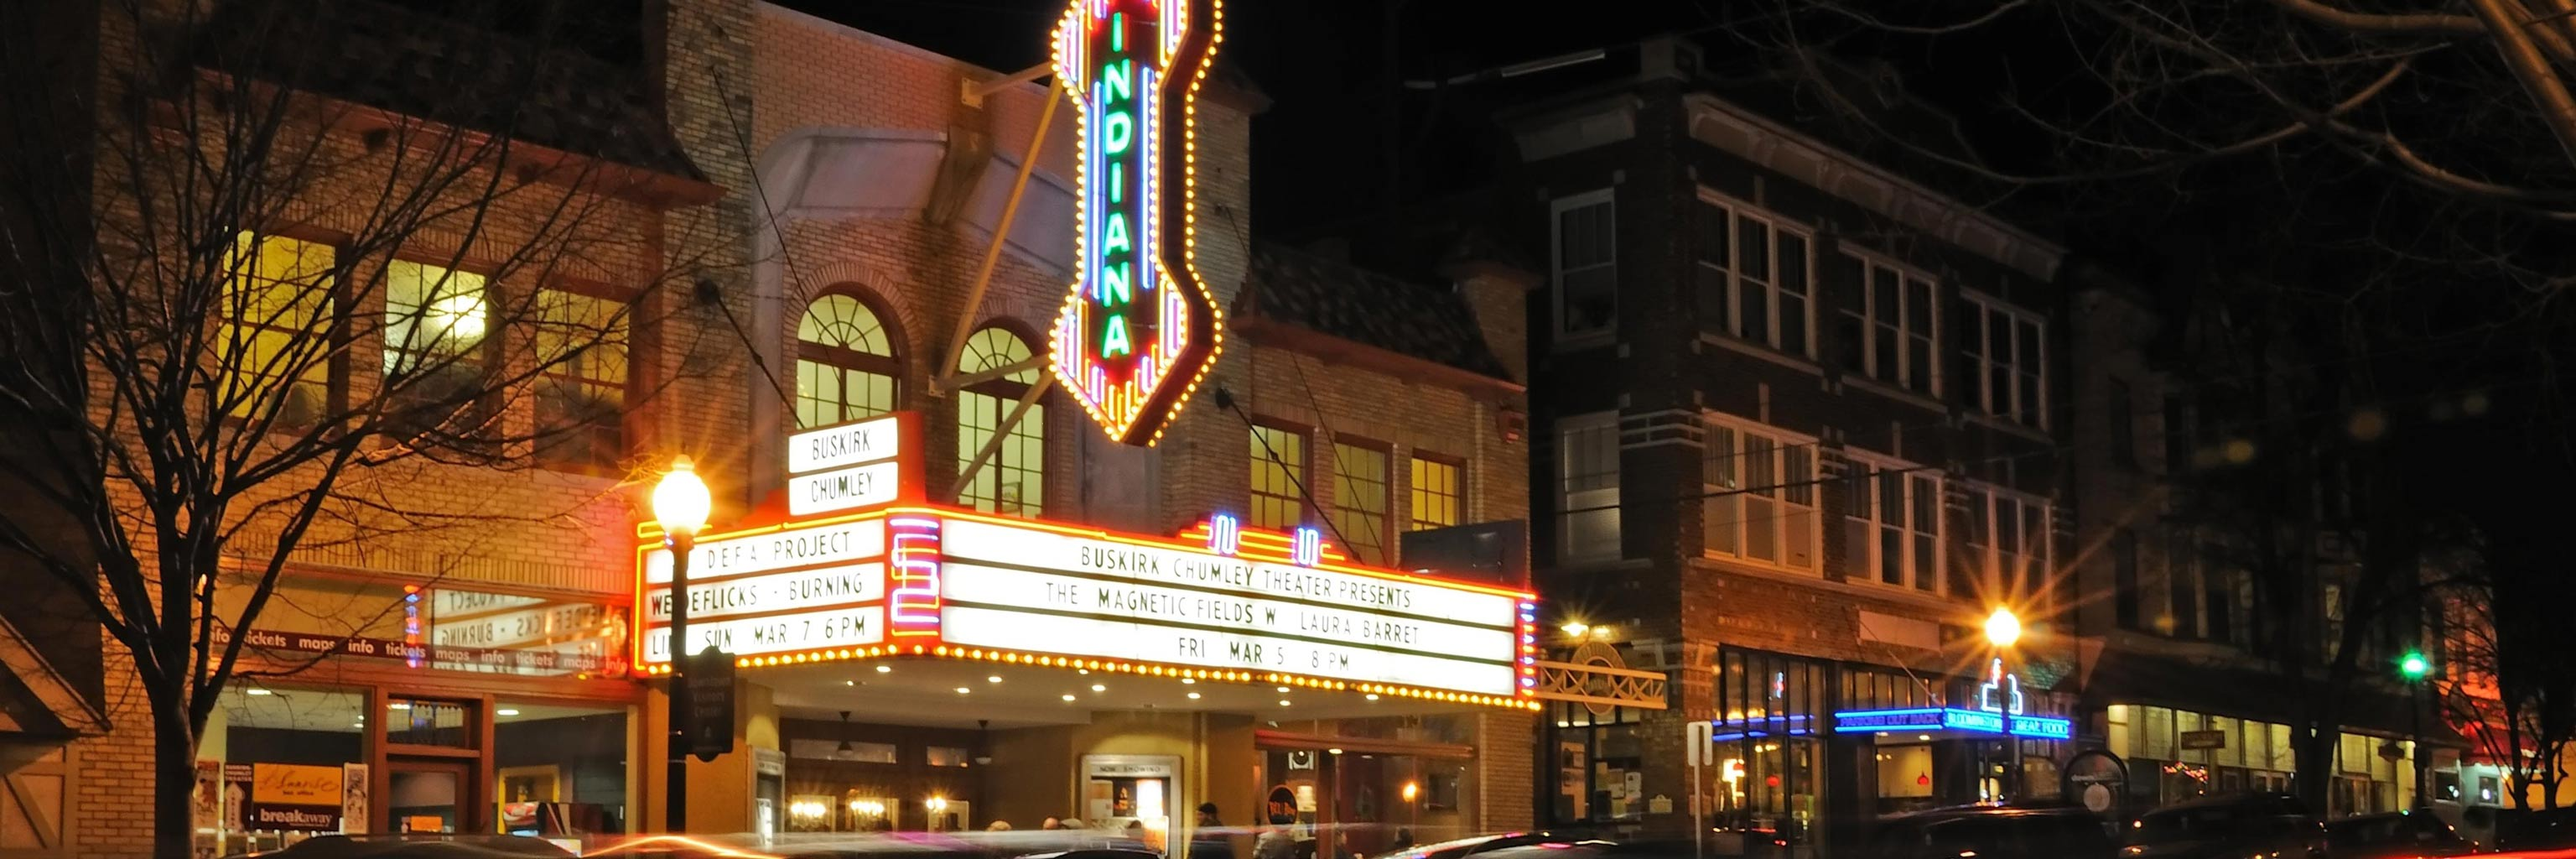 Buskirk theatre light marque